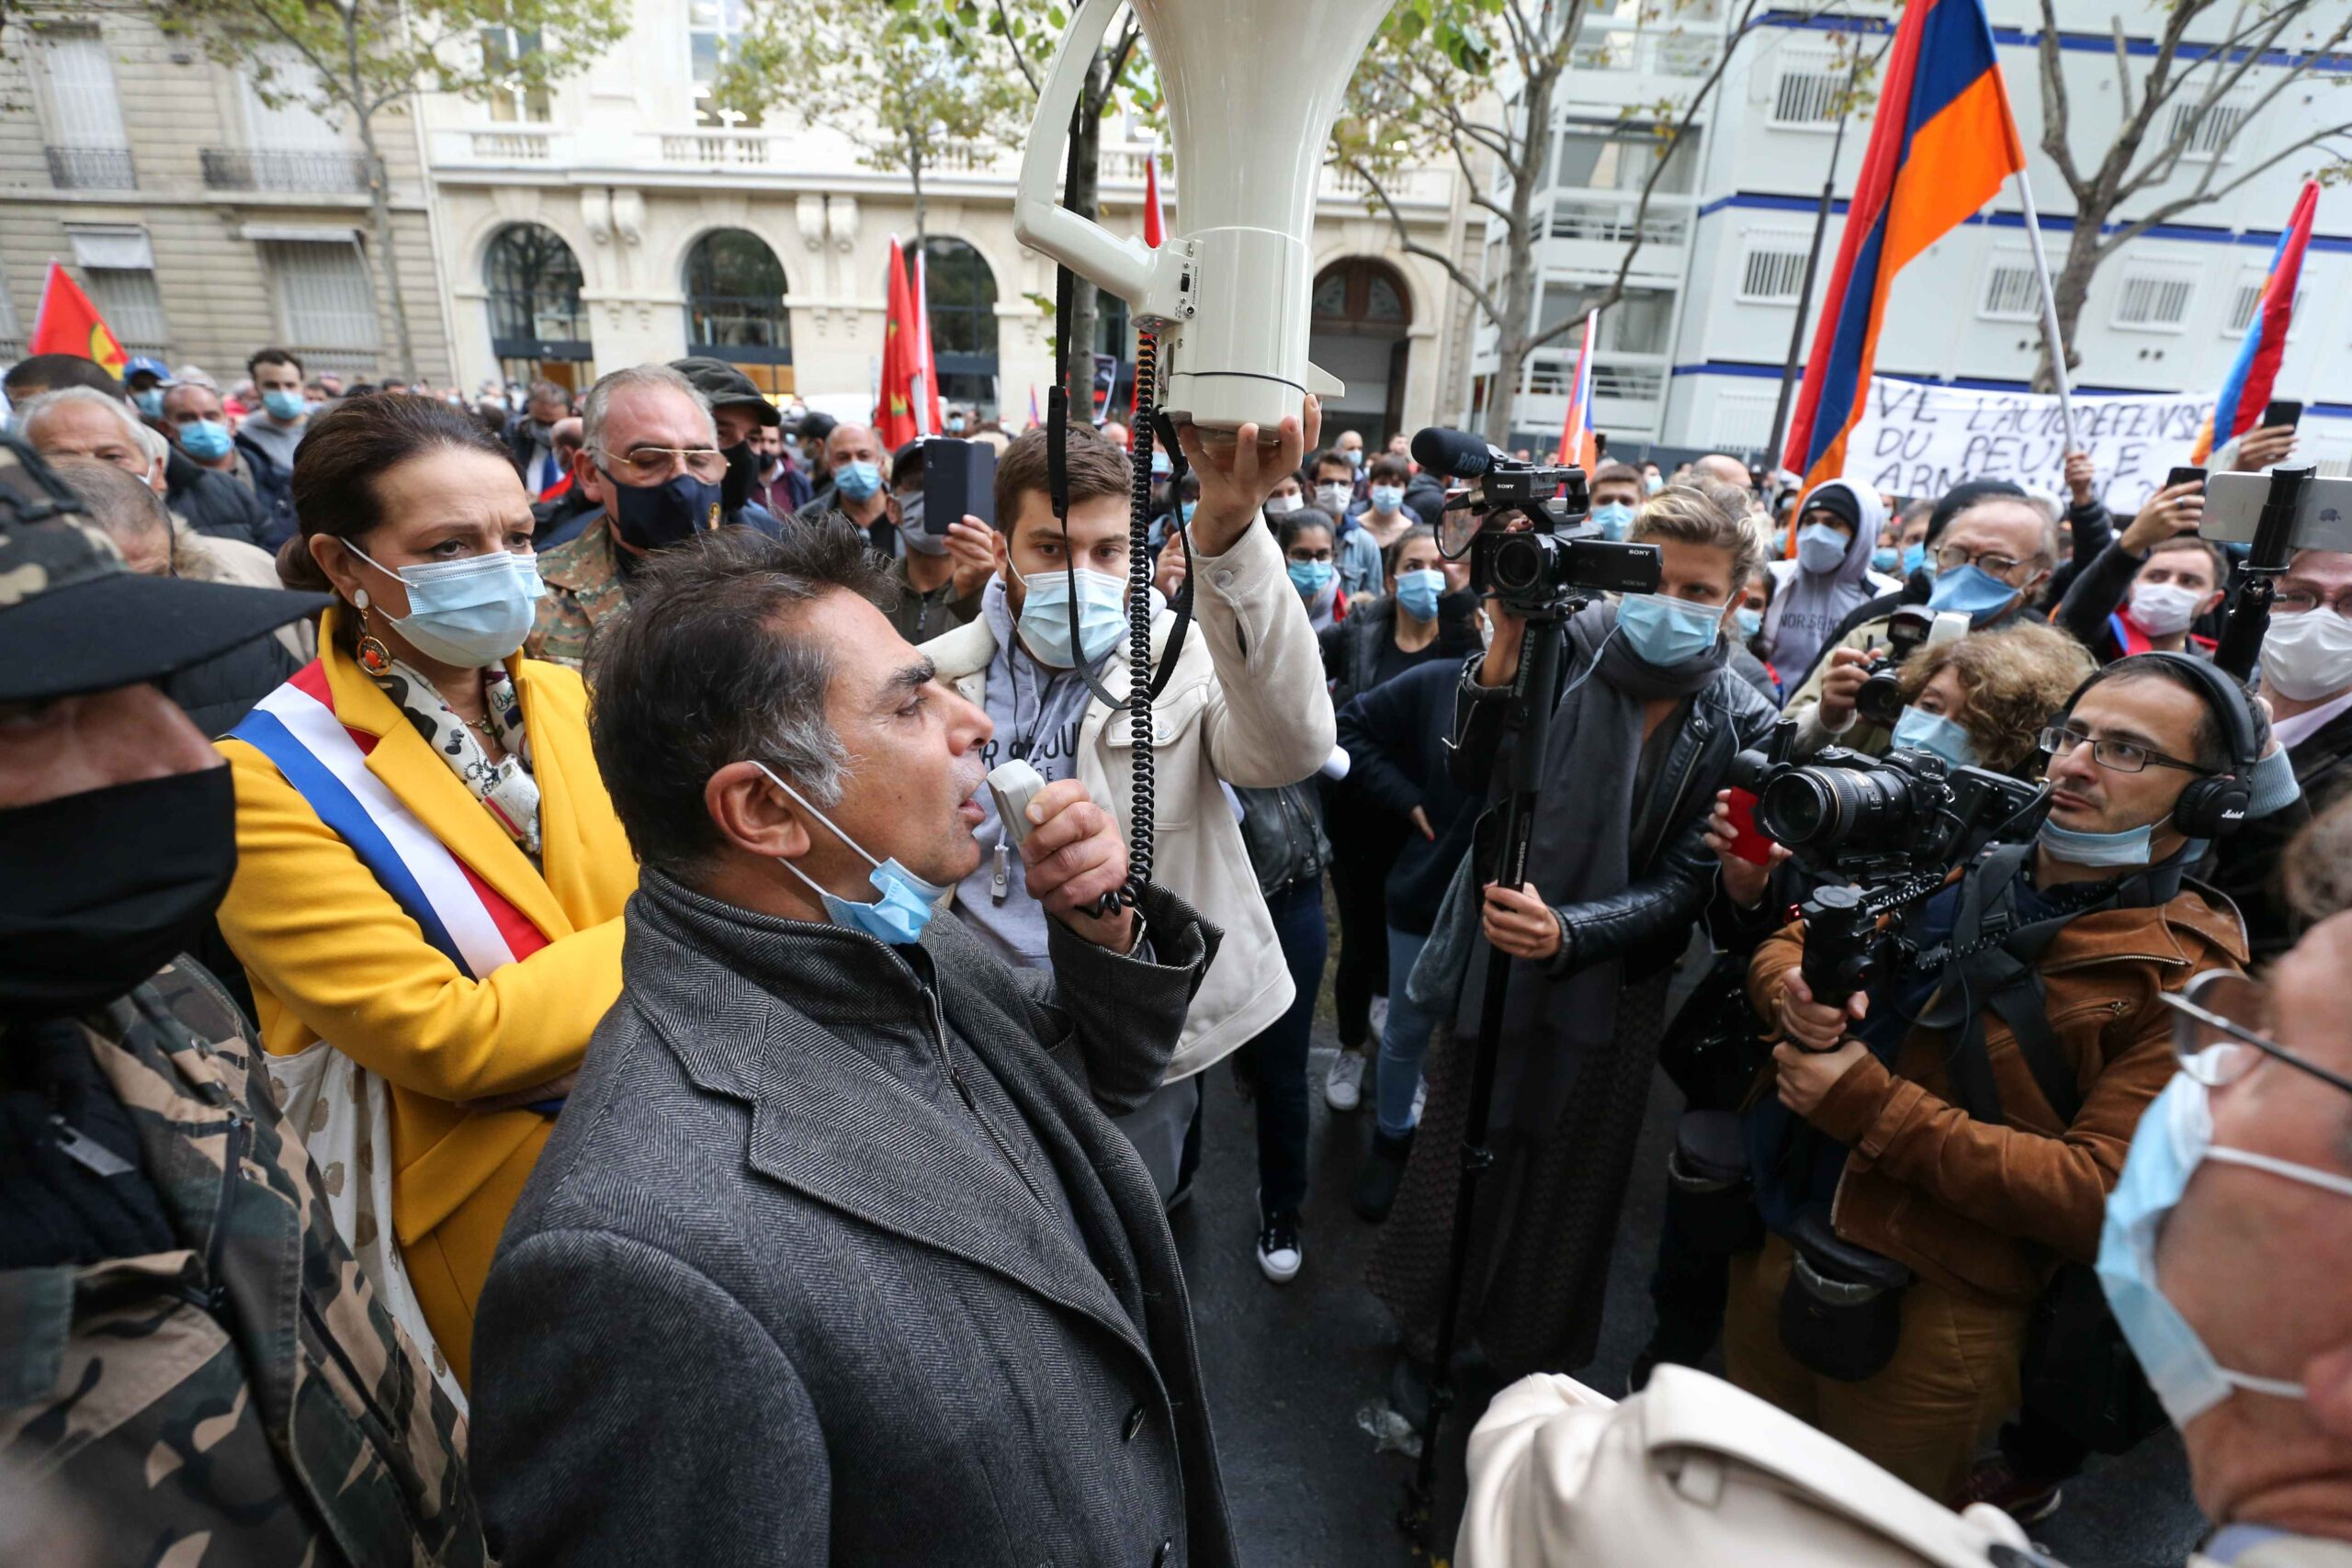 Mourad Franck Papazian (3L), the co-president of the Coordination Council of Armenian organisations of France (CCAF), the representative body of the French-Armenian community, addresses the demonstrators during a demonstration of Armenians in front of the